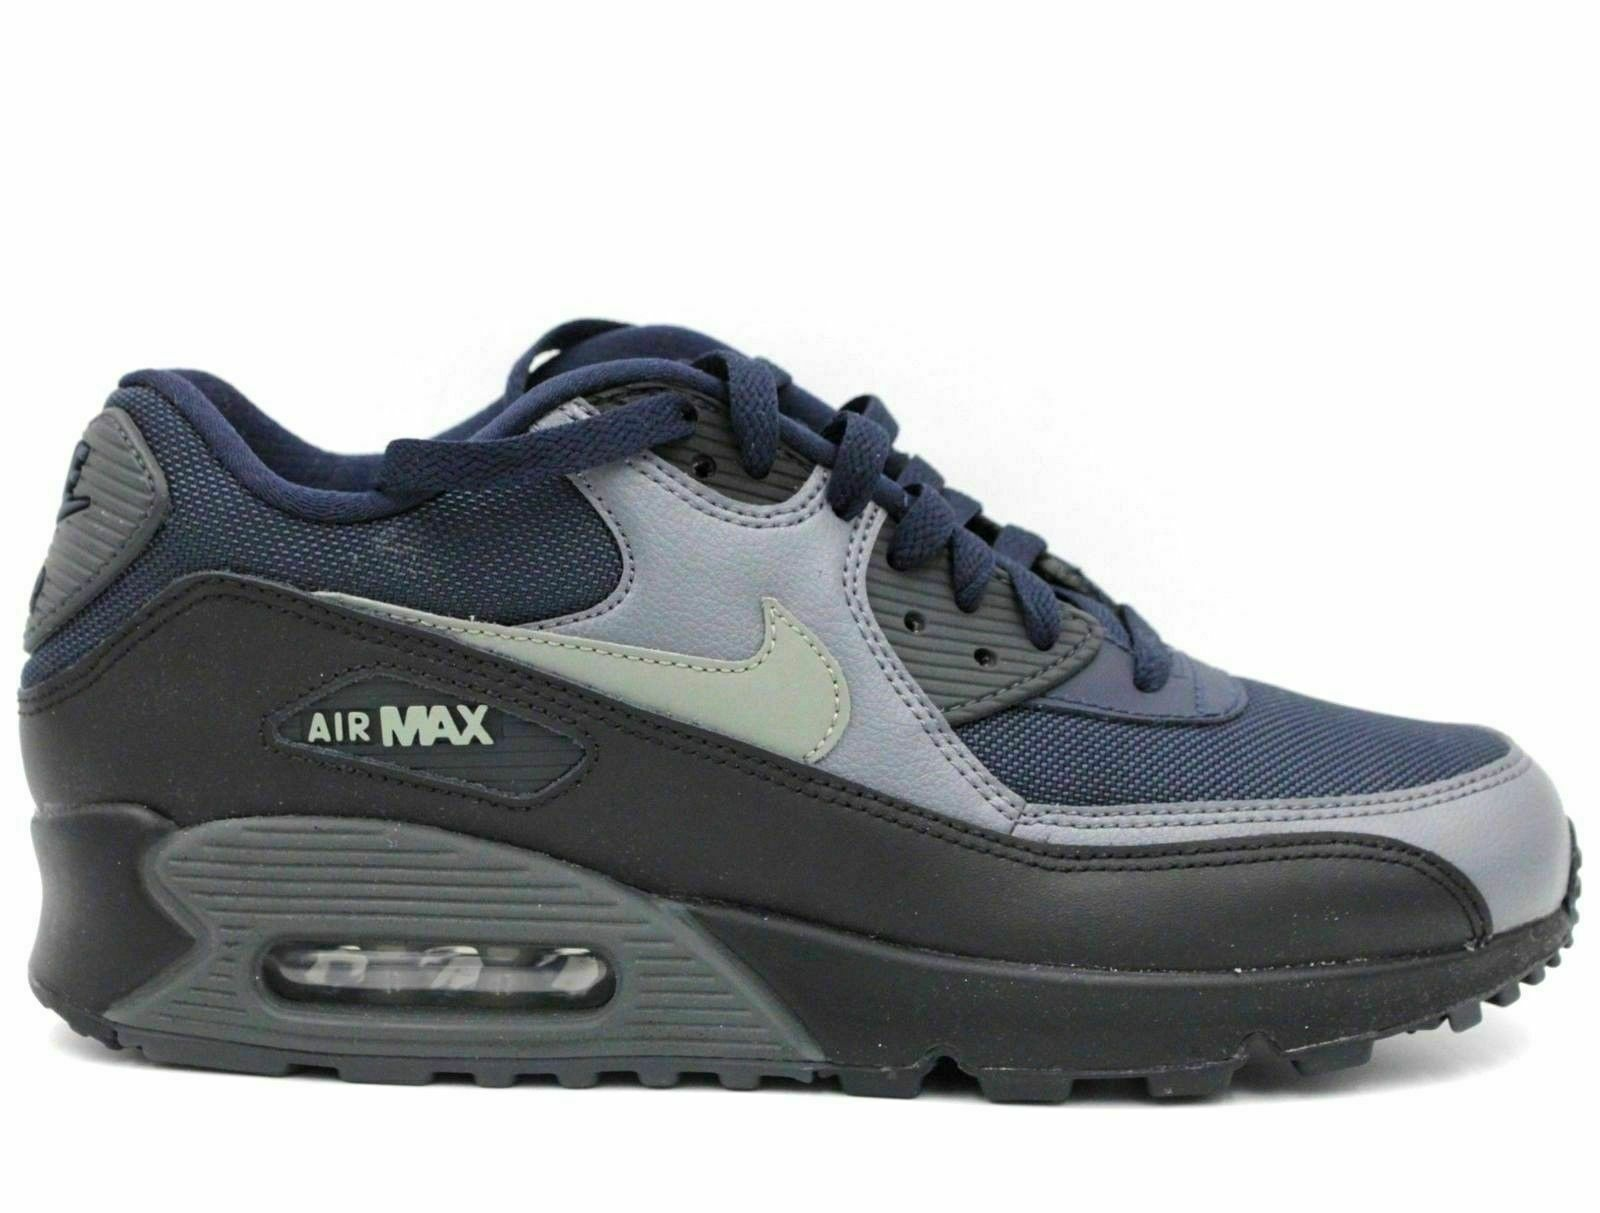 quality design 1caae 6ac94 Details about NIKE AIR MAX 90 ESSENTIAL Men Athletic Fashion Sneakers Size  8.5 Navy Blue Black